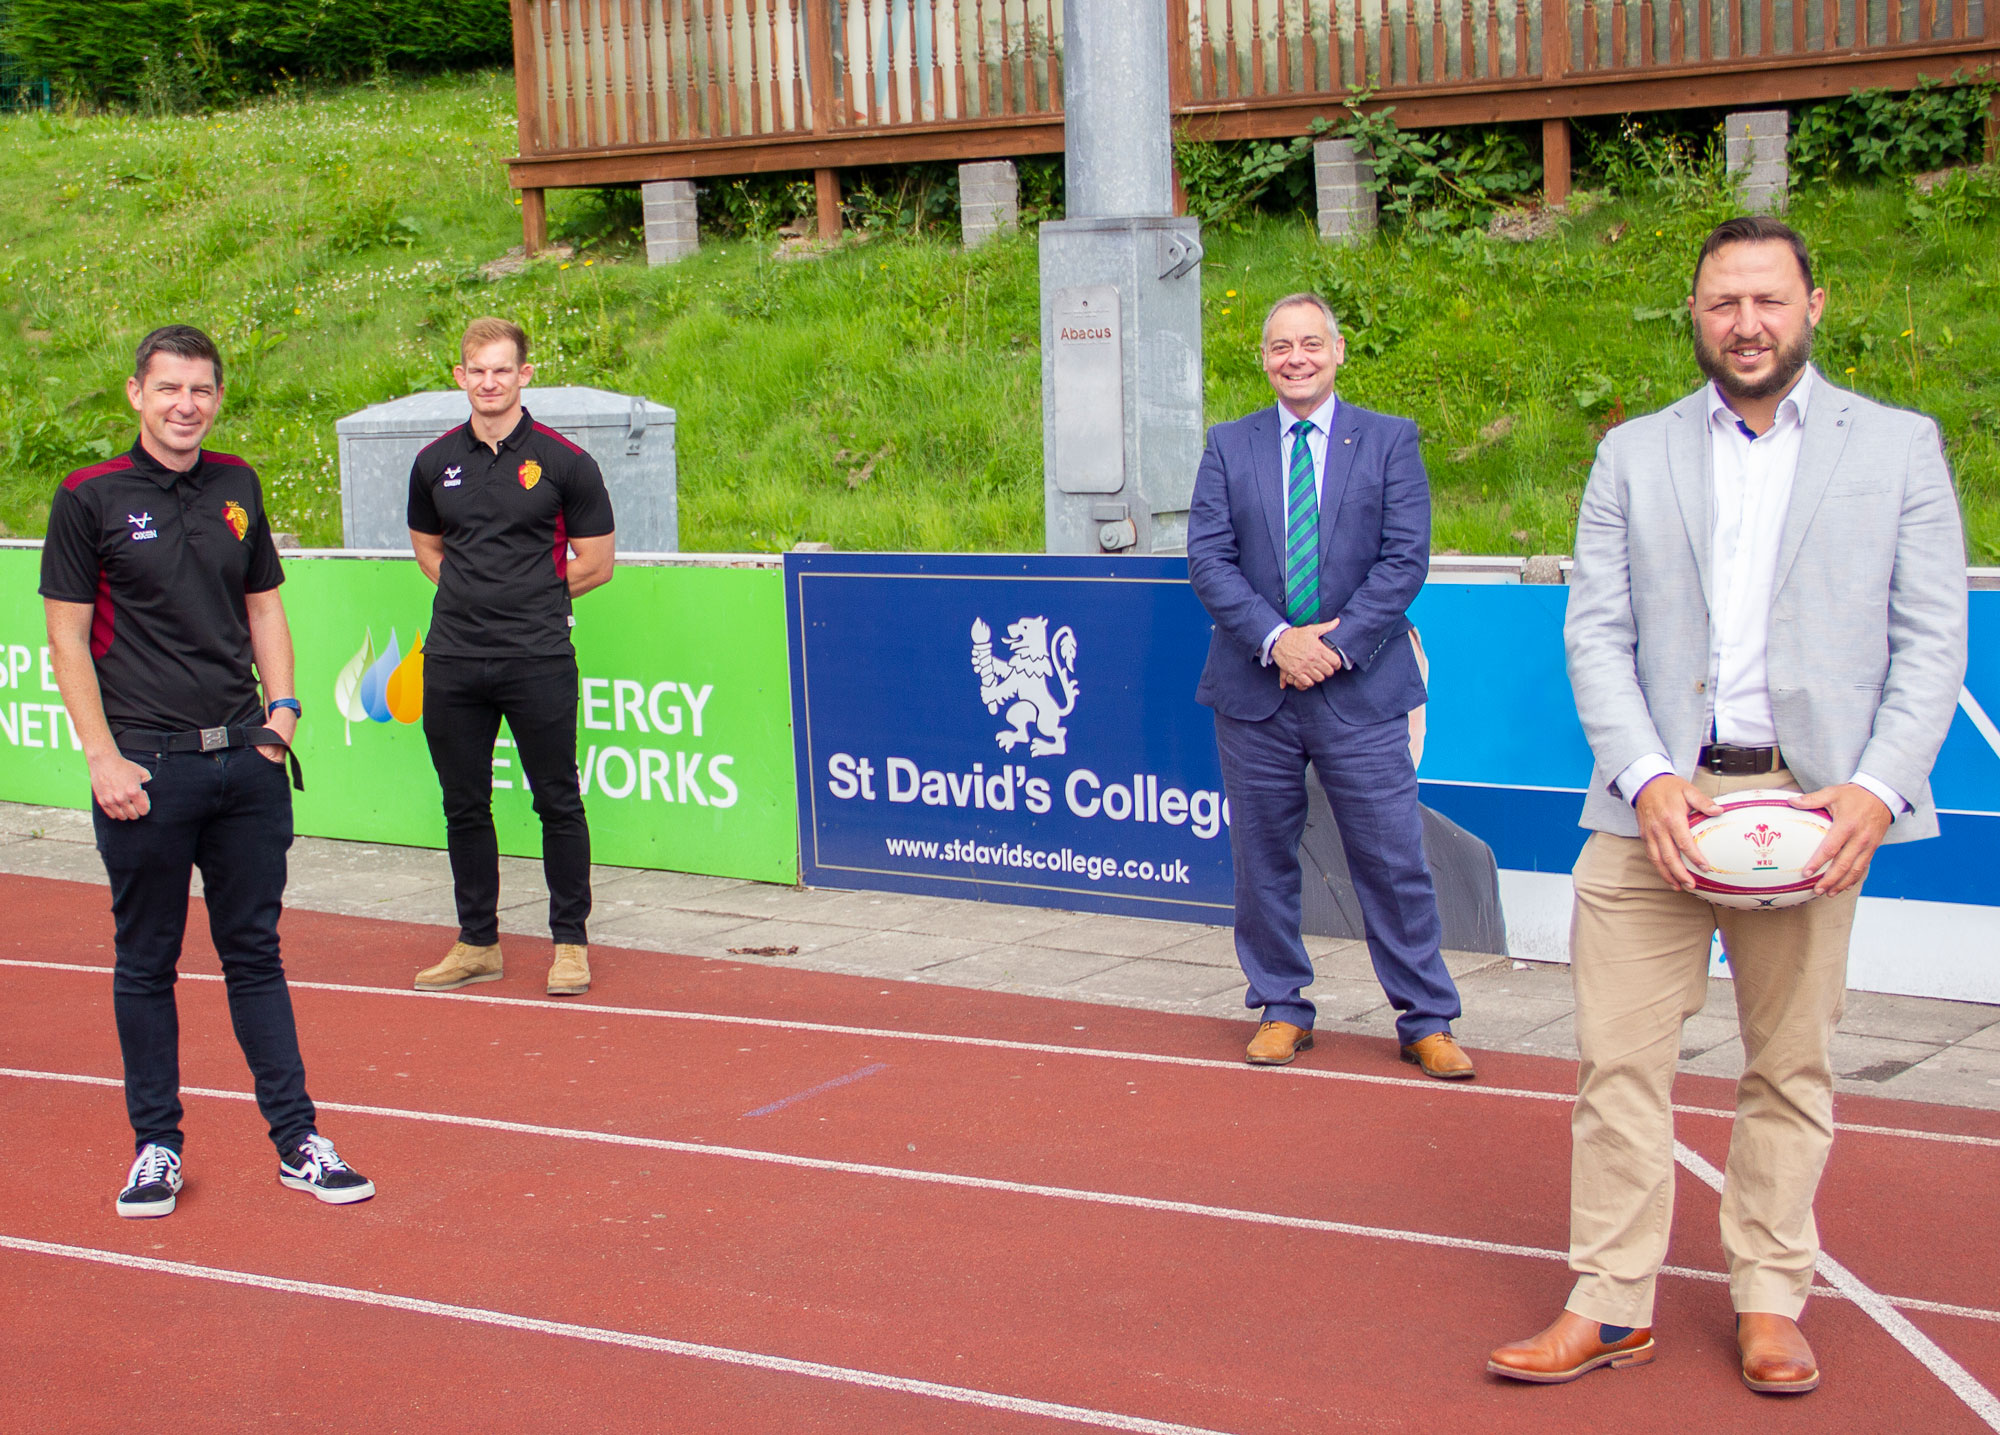 RGC and St David's College Announce New Partnership